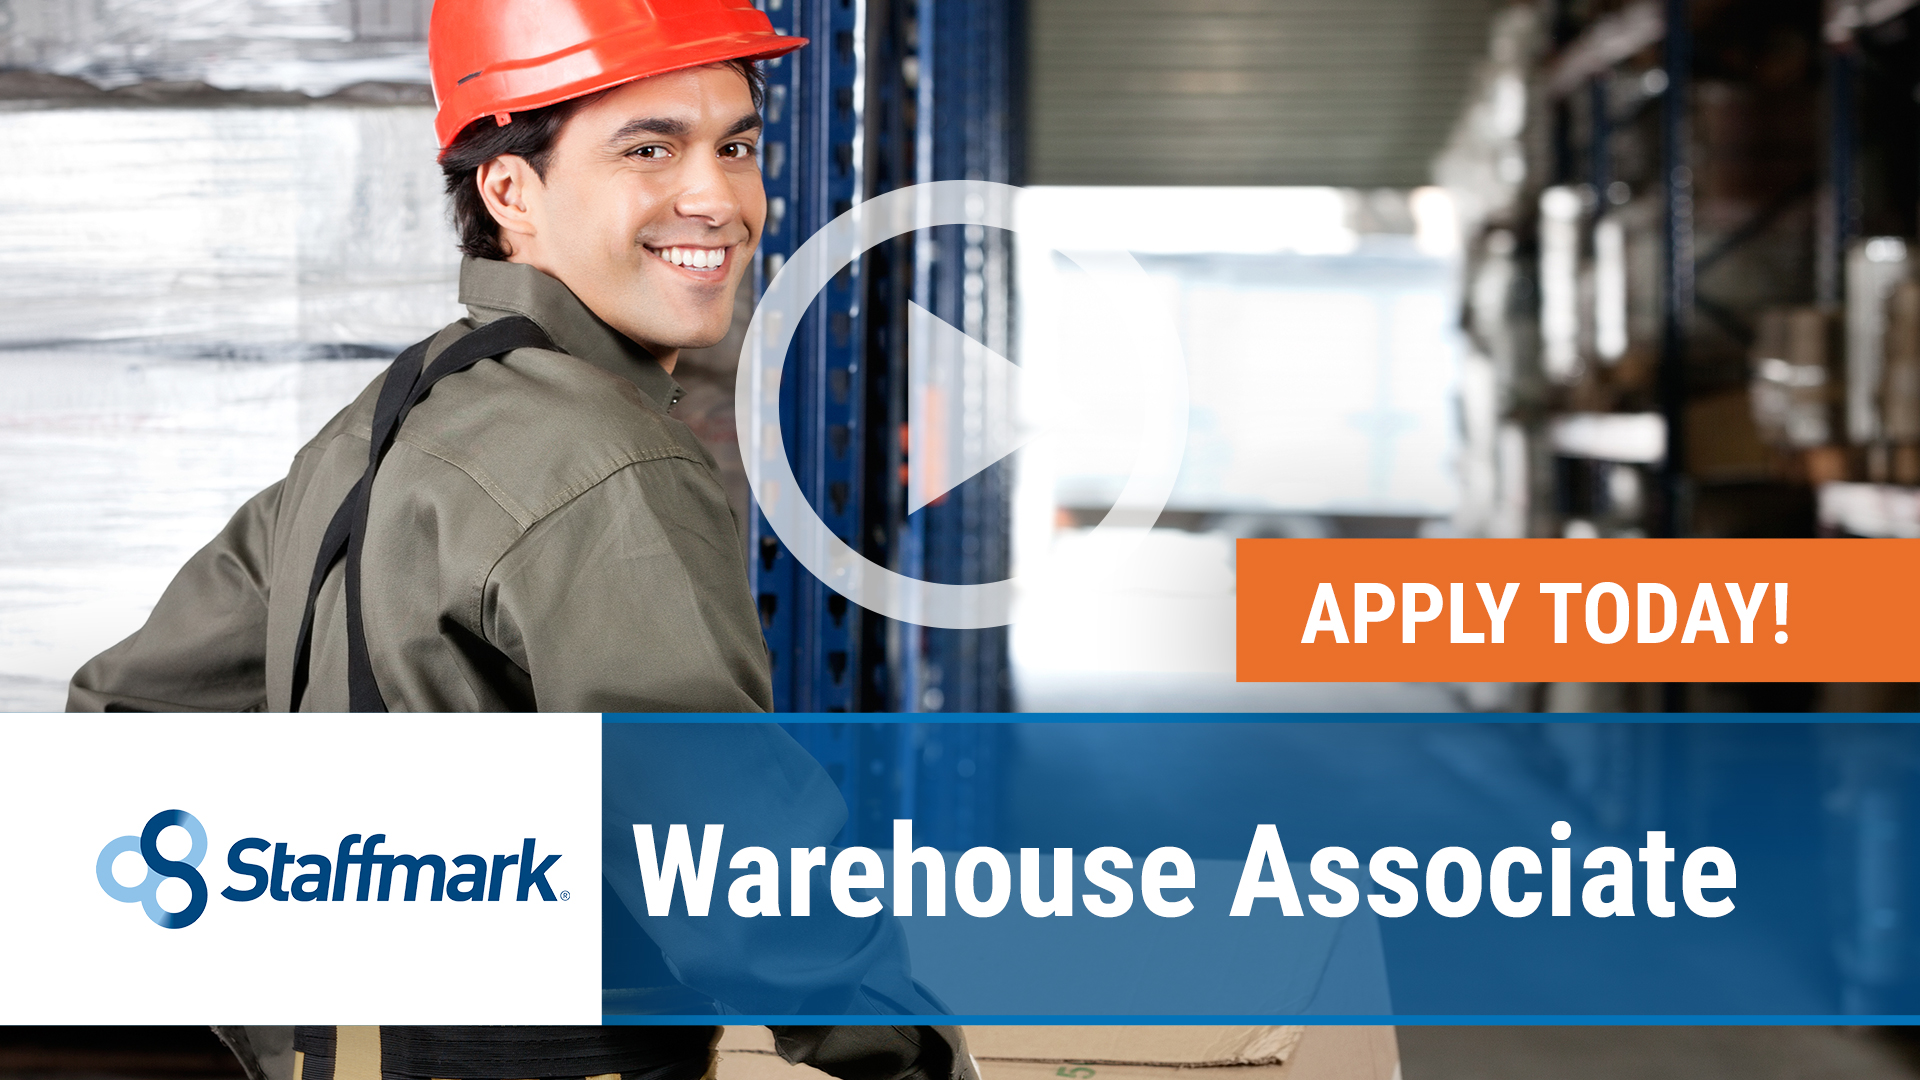 Watch our careers video for available job opening Warehouse Associate in San Leandro, CA, USA